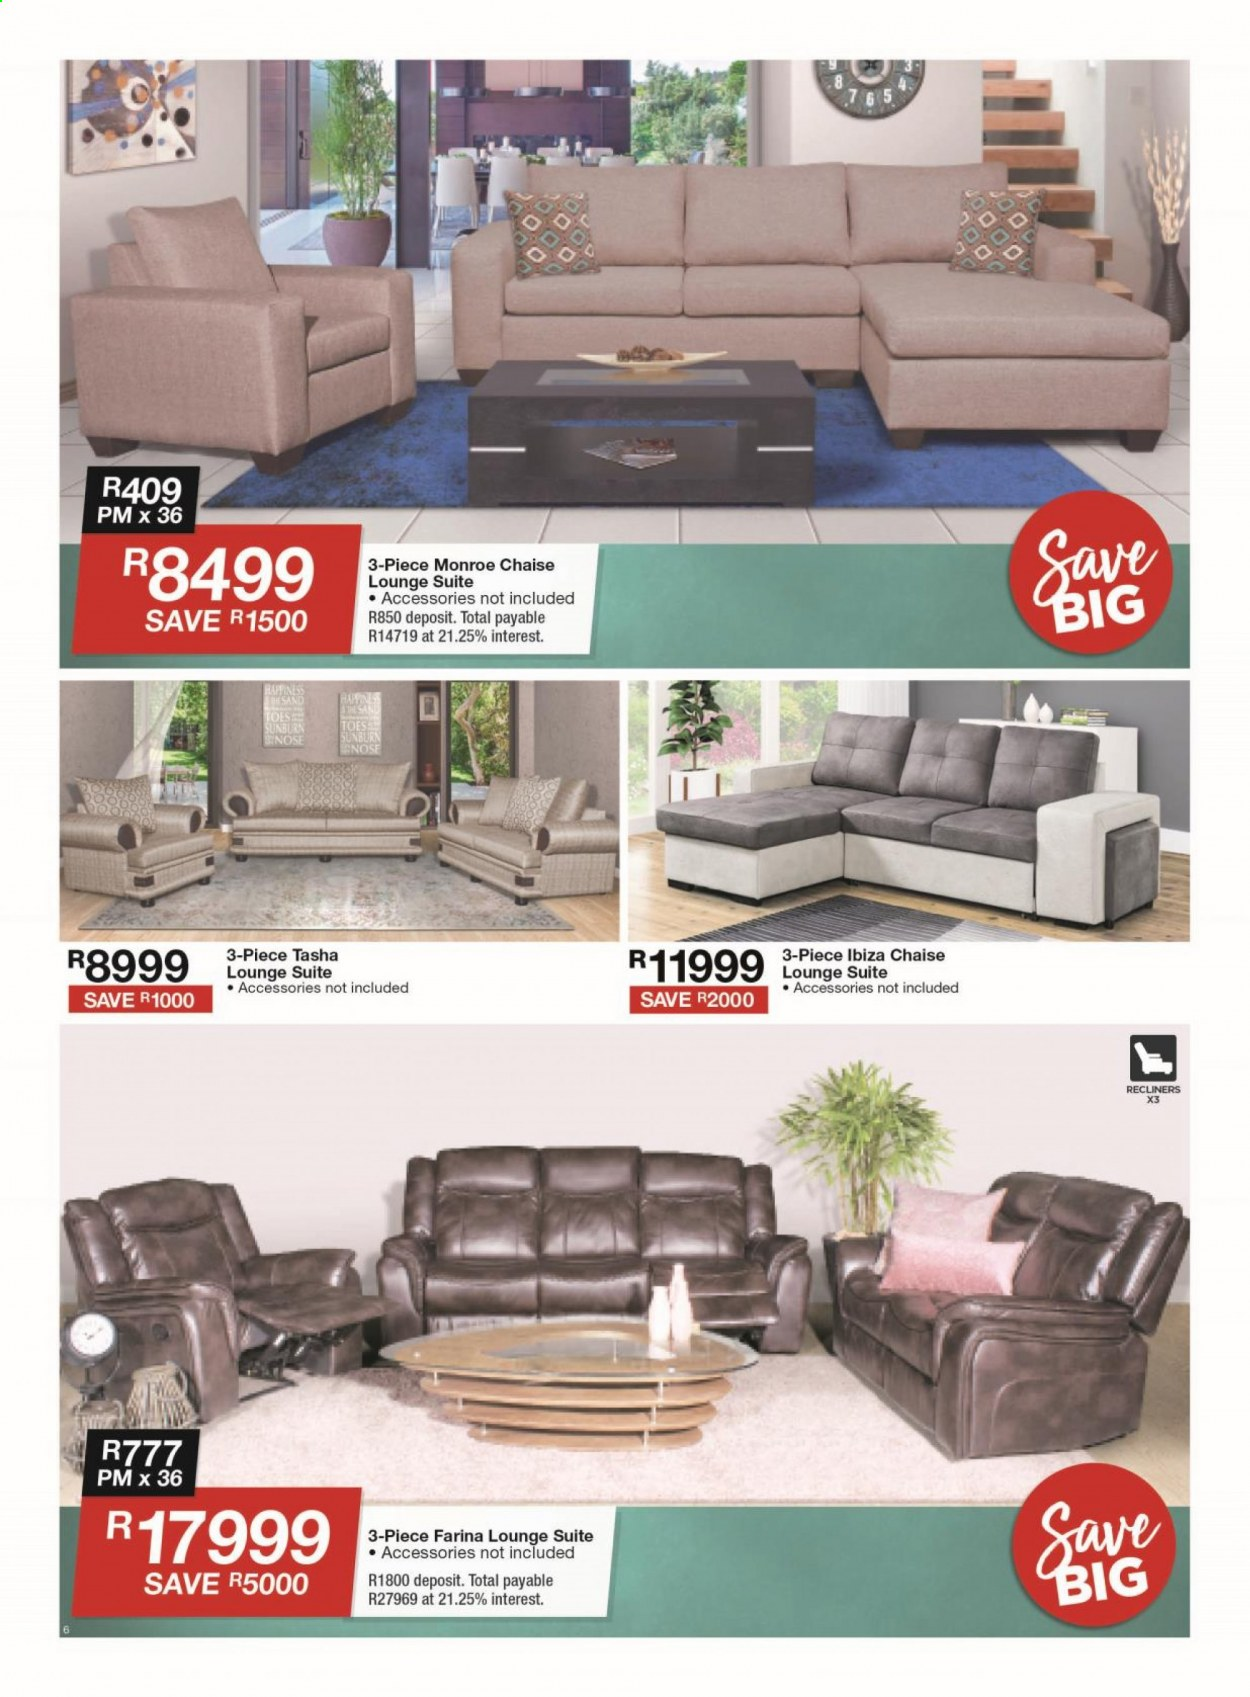 House & Home catalogue  - 04.06.2020 - 04.19.2020. Page 6.